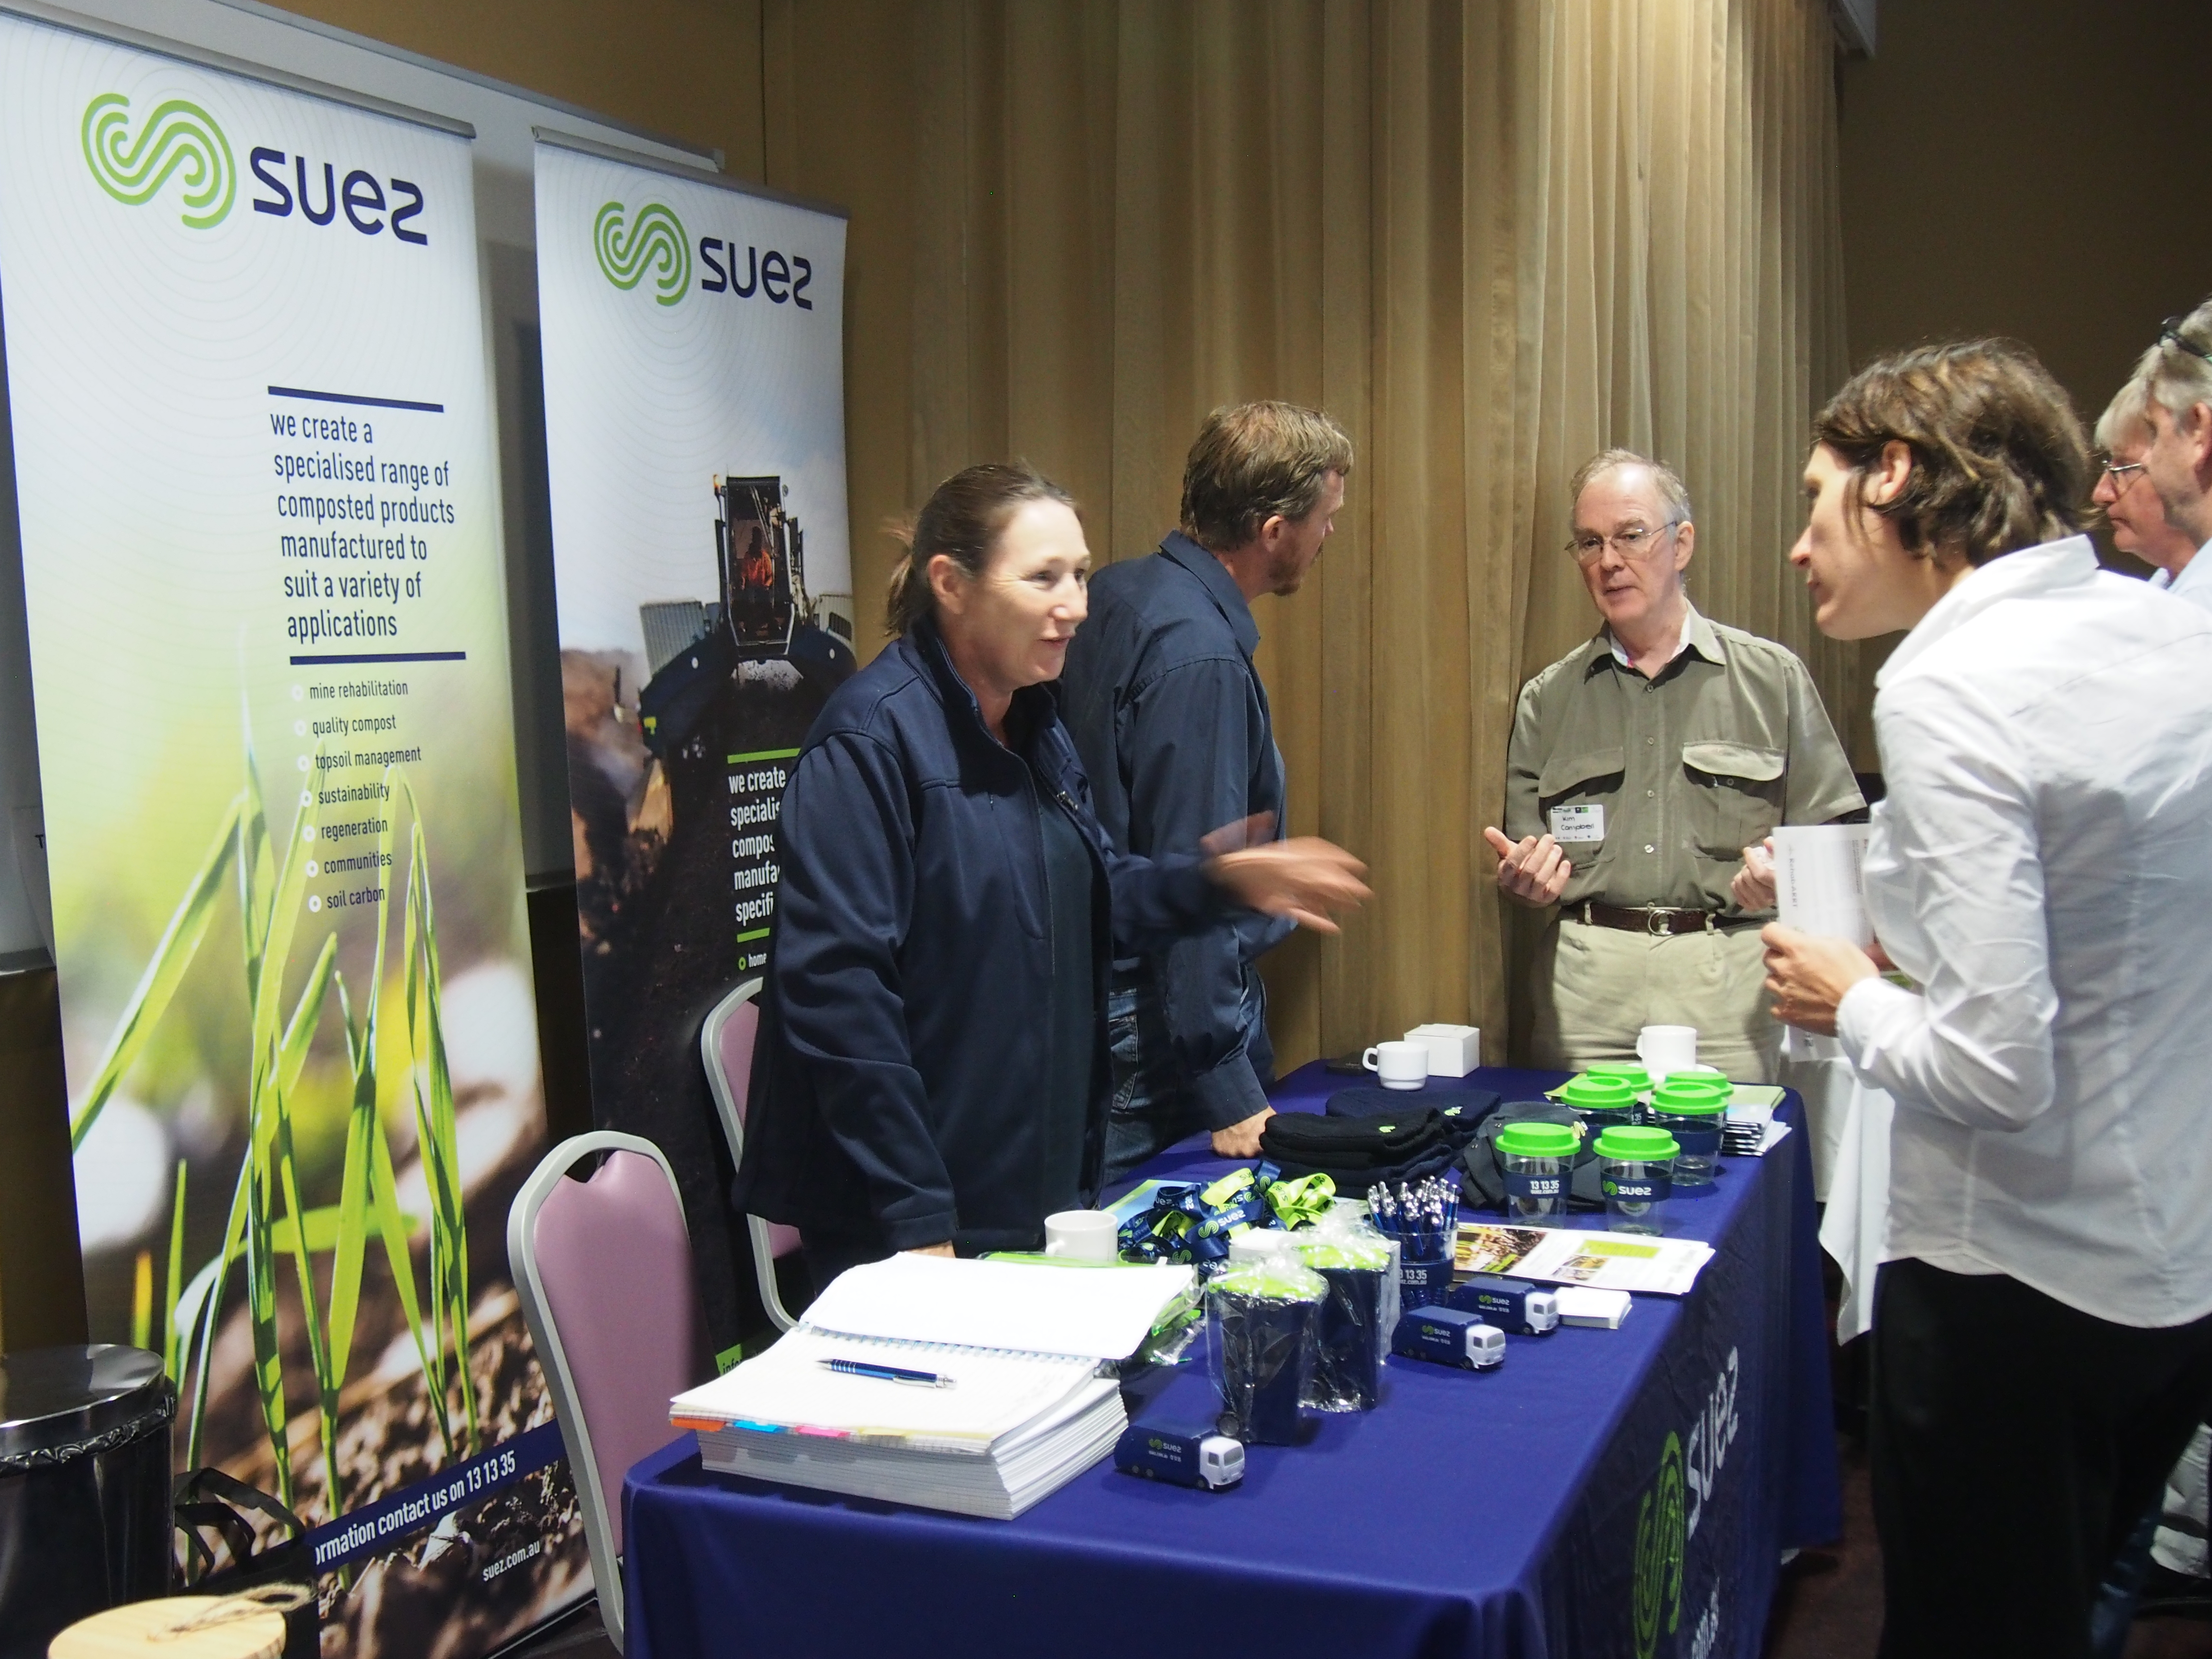 Suez, one of the session sponsors for the conference, pictured here with plenty of promotional give-aways